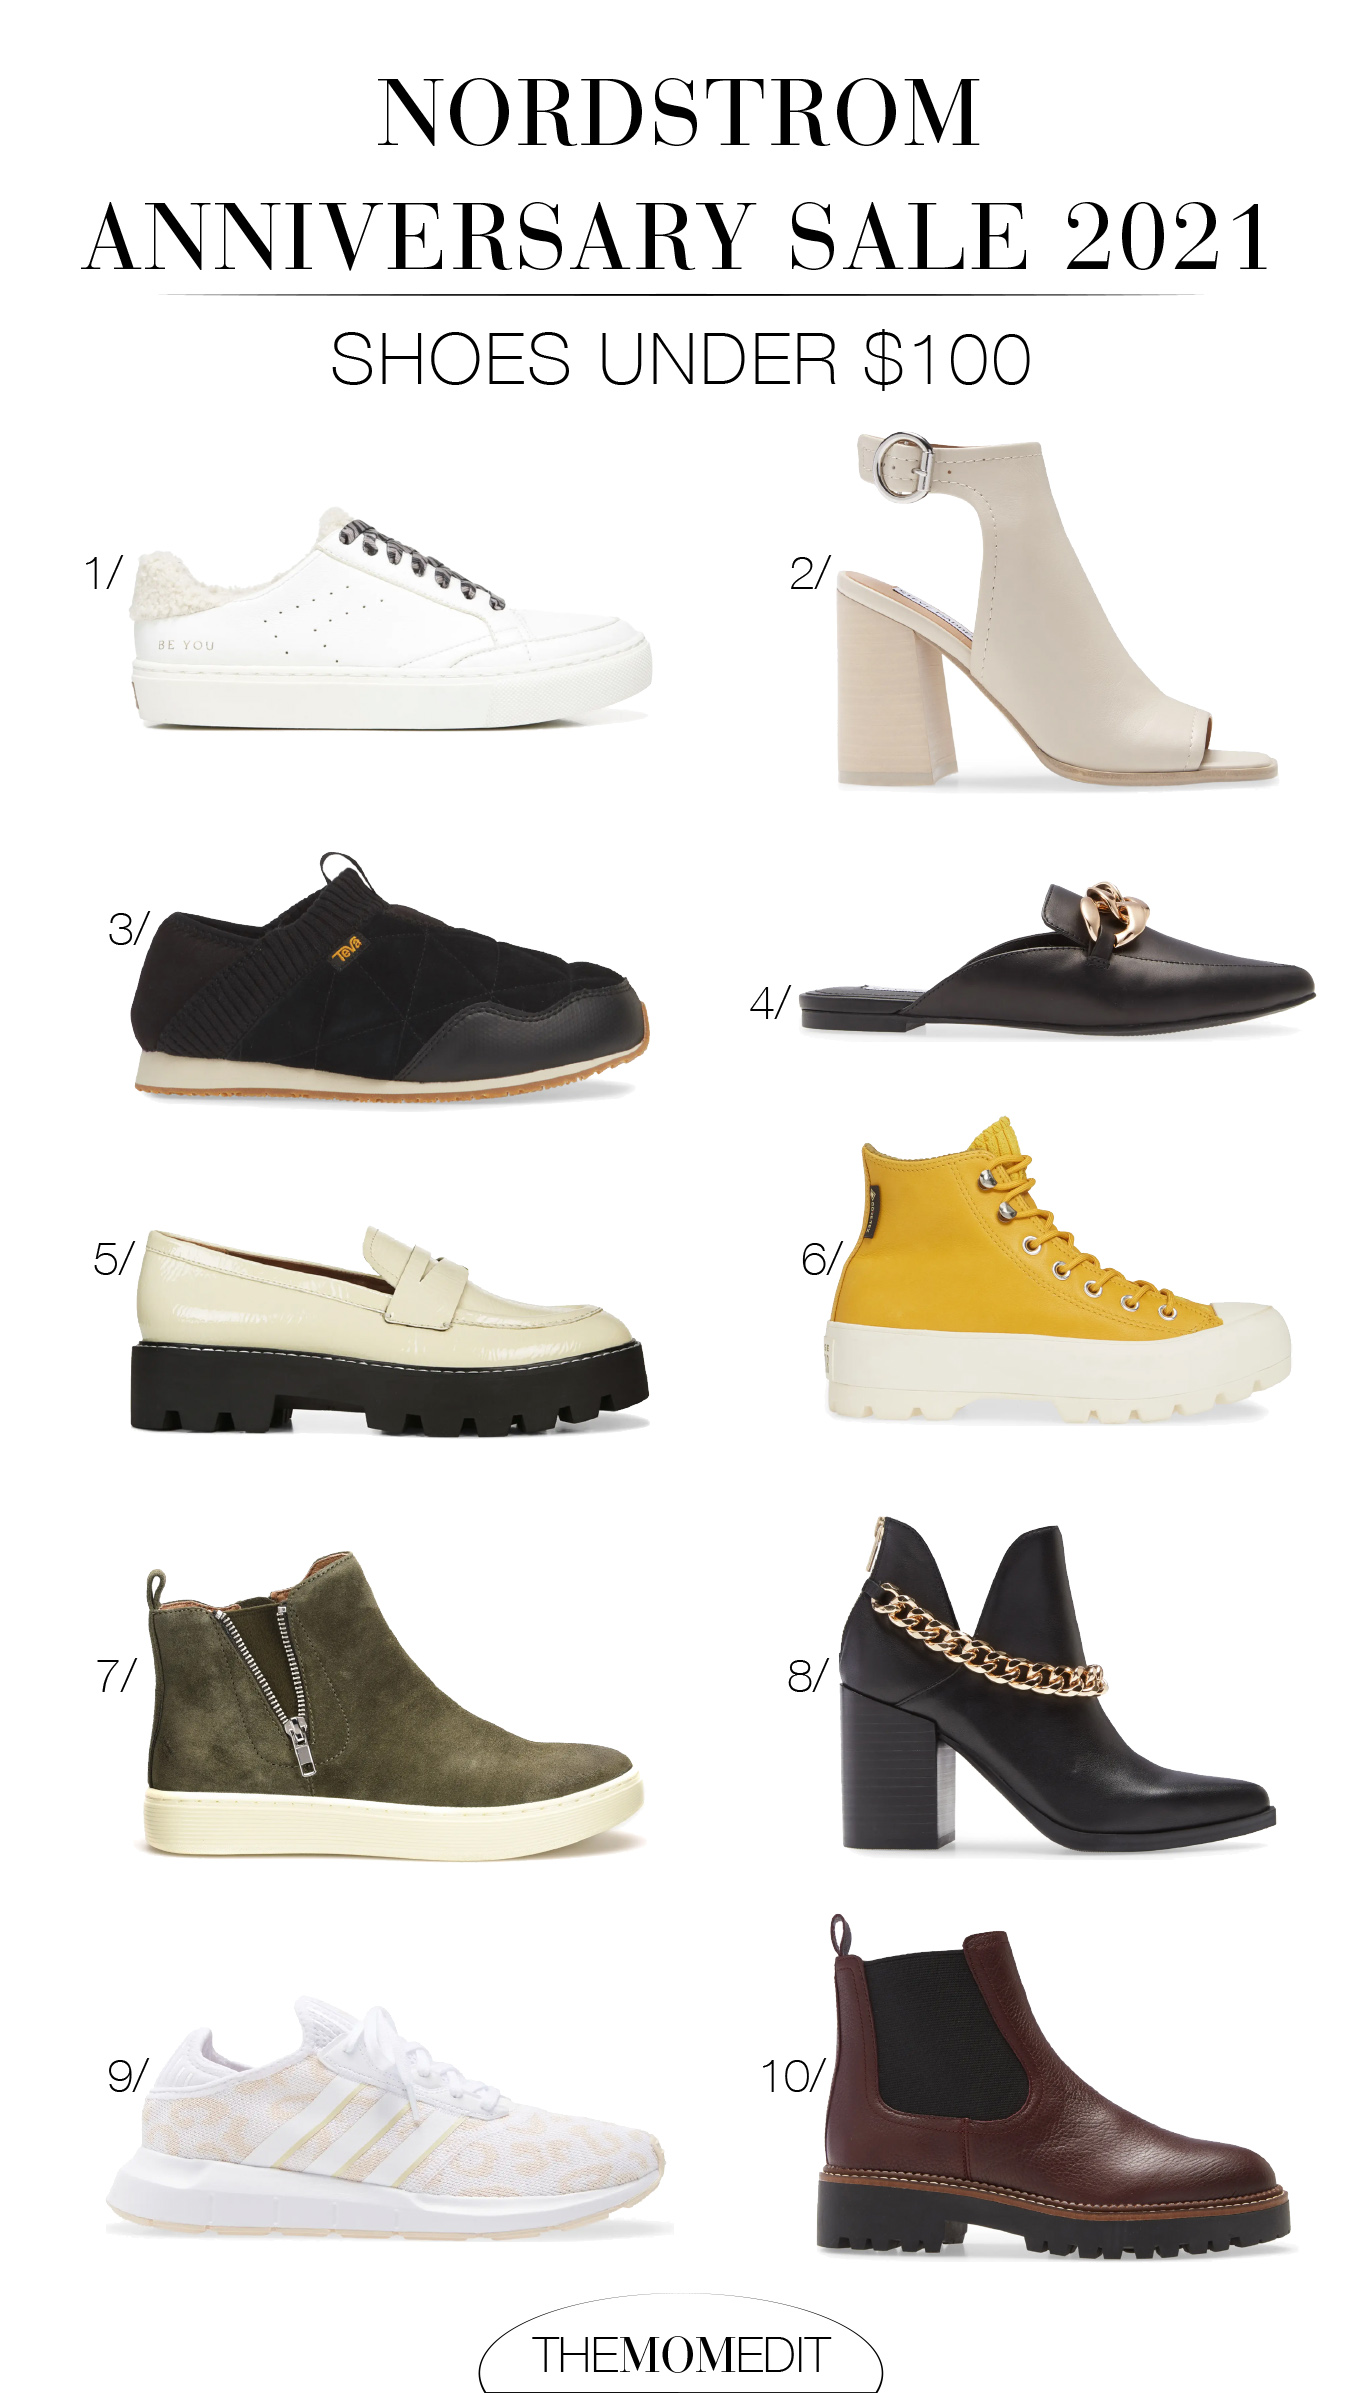 #NSale 2021 offers a rad selection of sneakers, boots, loafers & more from brands like Adidas, Sam Edelman, Teva + Converse...perfect for all those cute fall outfits.